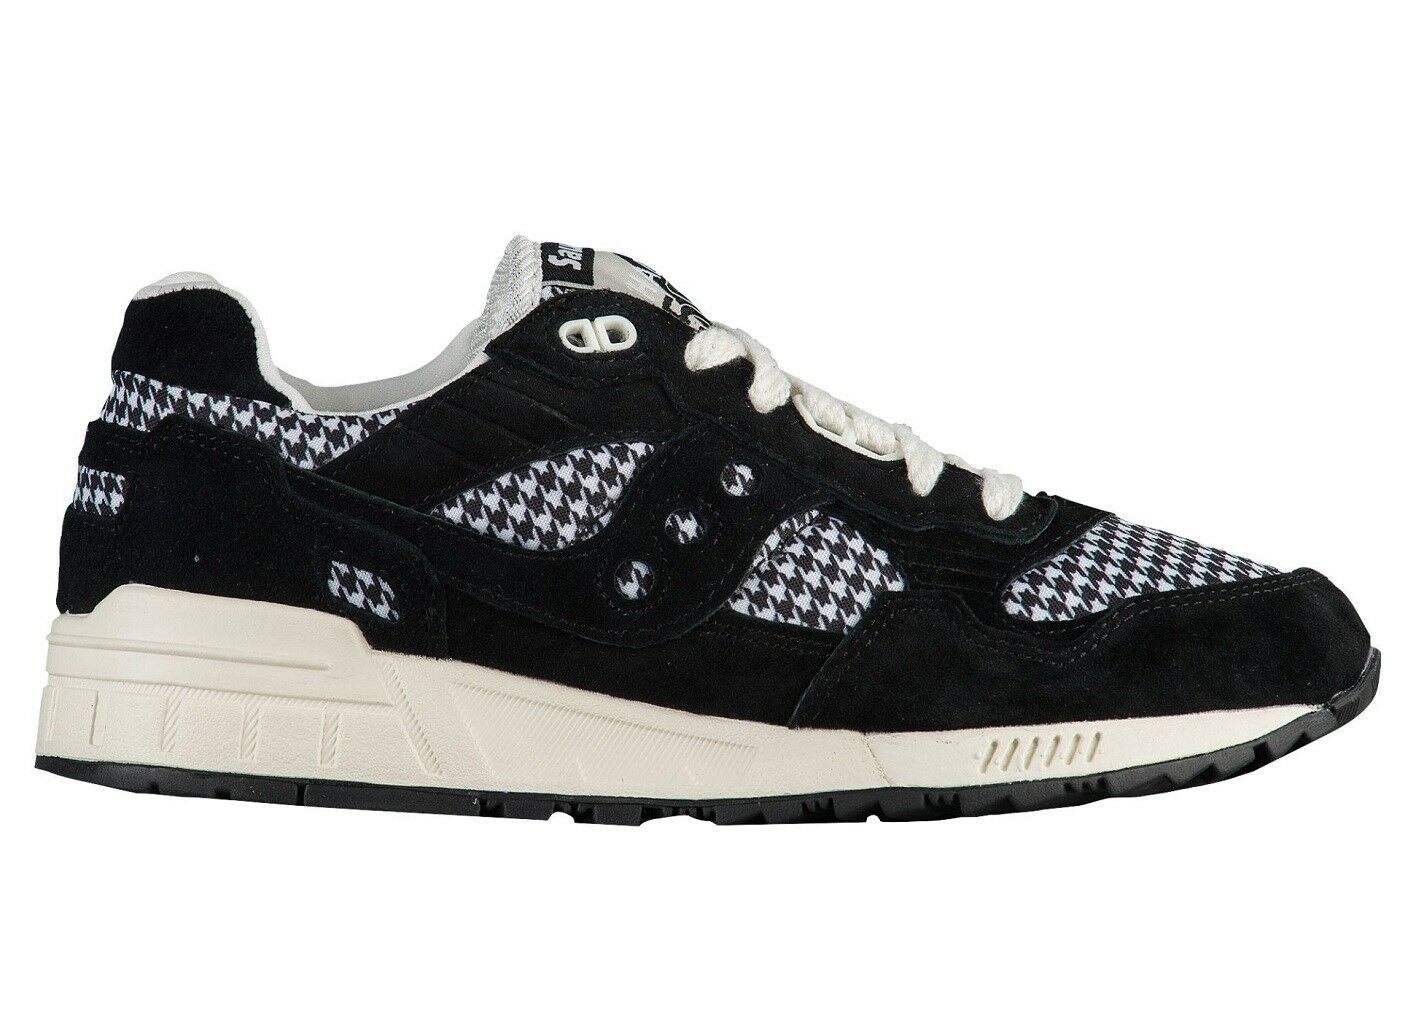 Saucony Shadow 5000 Houndstooth Womens S603501 Black Running Shoes Size 8